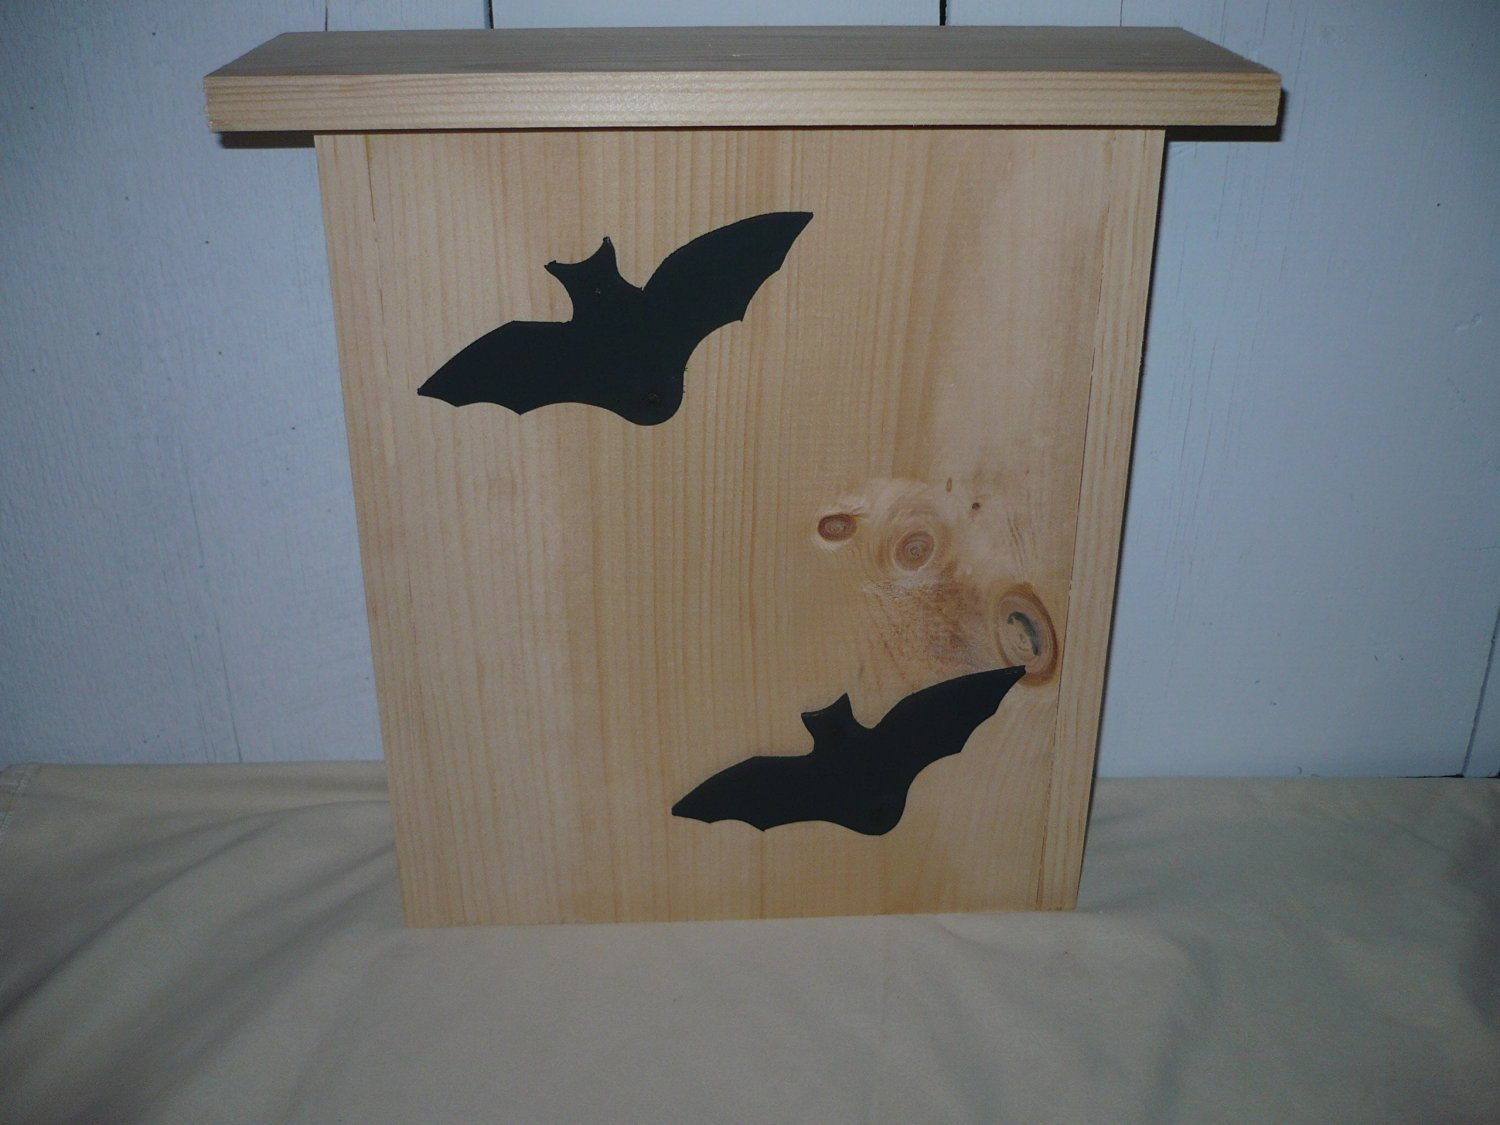 Buy Unfinished Bat House. This Unfinished Bat House Has 2 Bat ... on renovating a house, rebuilding a house, acquiring a house, construction a house, inspecting a house, running to a house, putting together a house, flooding a house, updating a house, erecting a house, demolishing a house, constructing a house, modernizing a house, making a house, repair a house, furnishing a house, moving a house, destroying a house, creating a house, excavating a house,